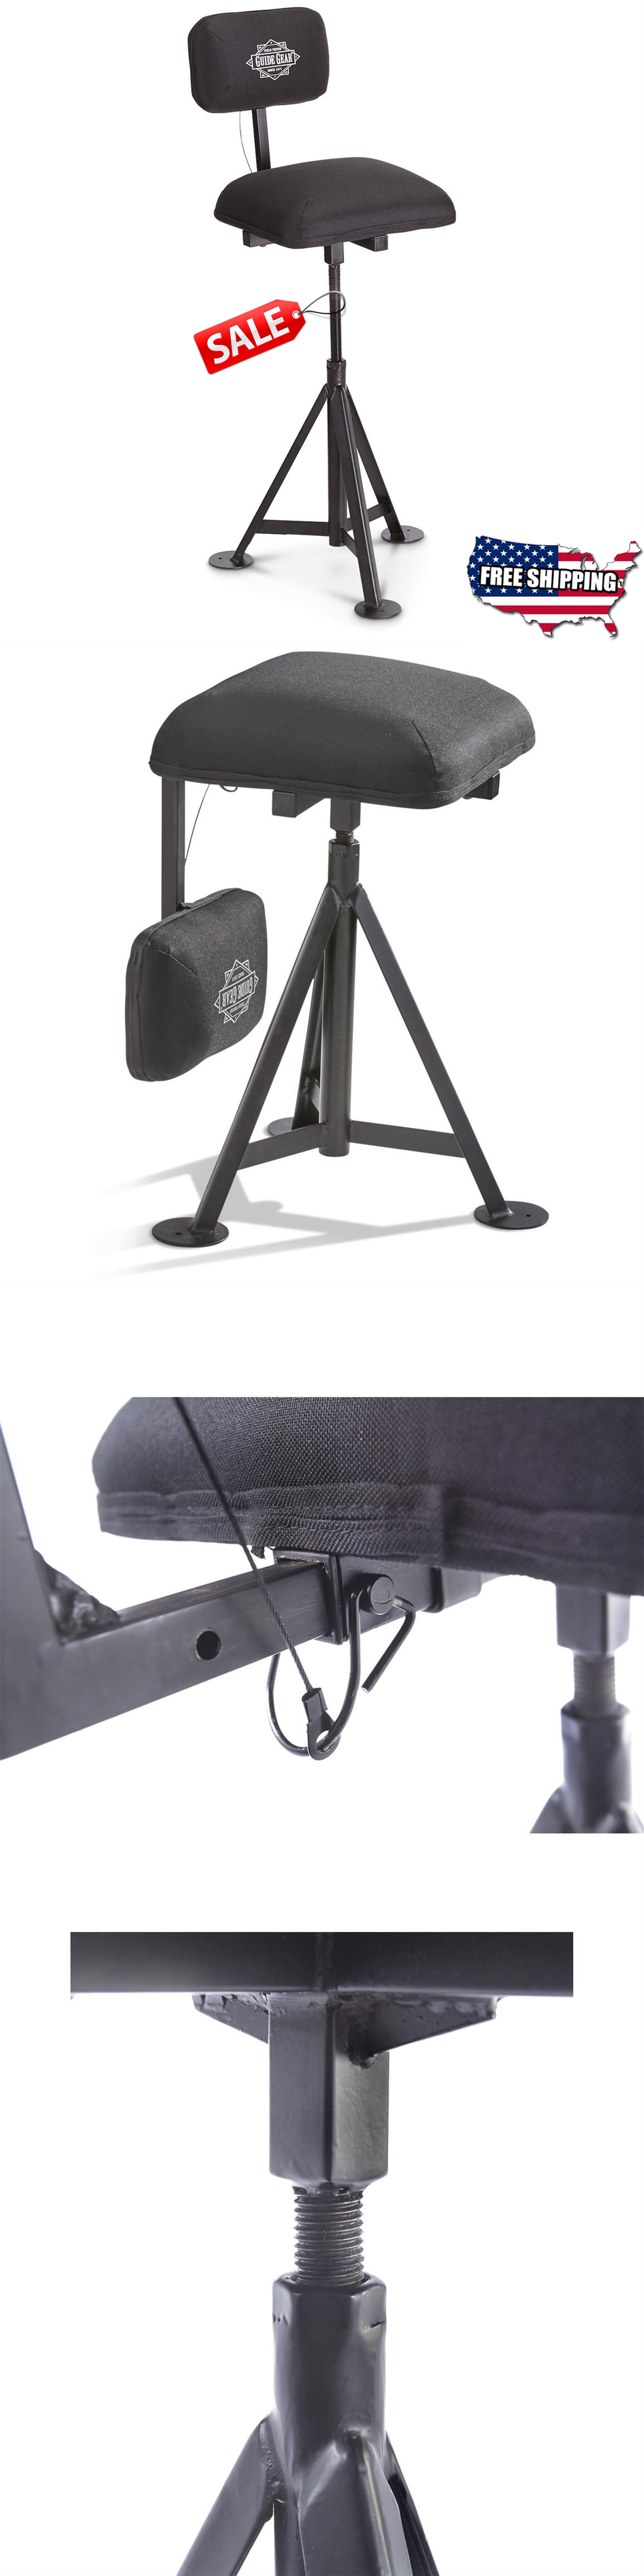 Seats and Chairs 52507 Swivel Blind Stool 360° Hunting Chair Adjustable Backrest Seat C&  sc 1 st  Pinterest & Seats and Chairs 52507: Swivel Blind Stool 360° Hunting Chair ... islam-shia.org